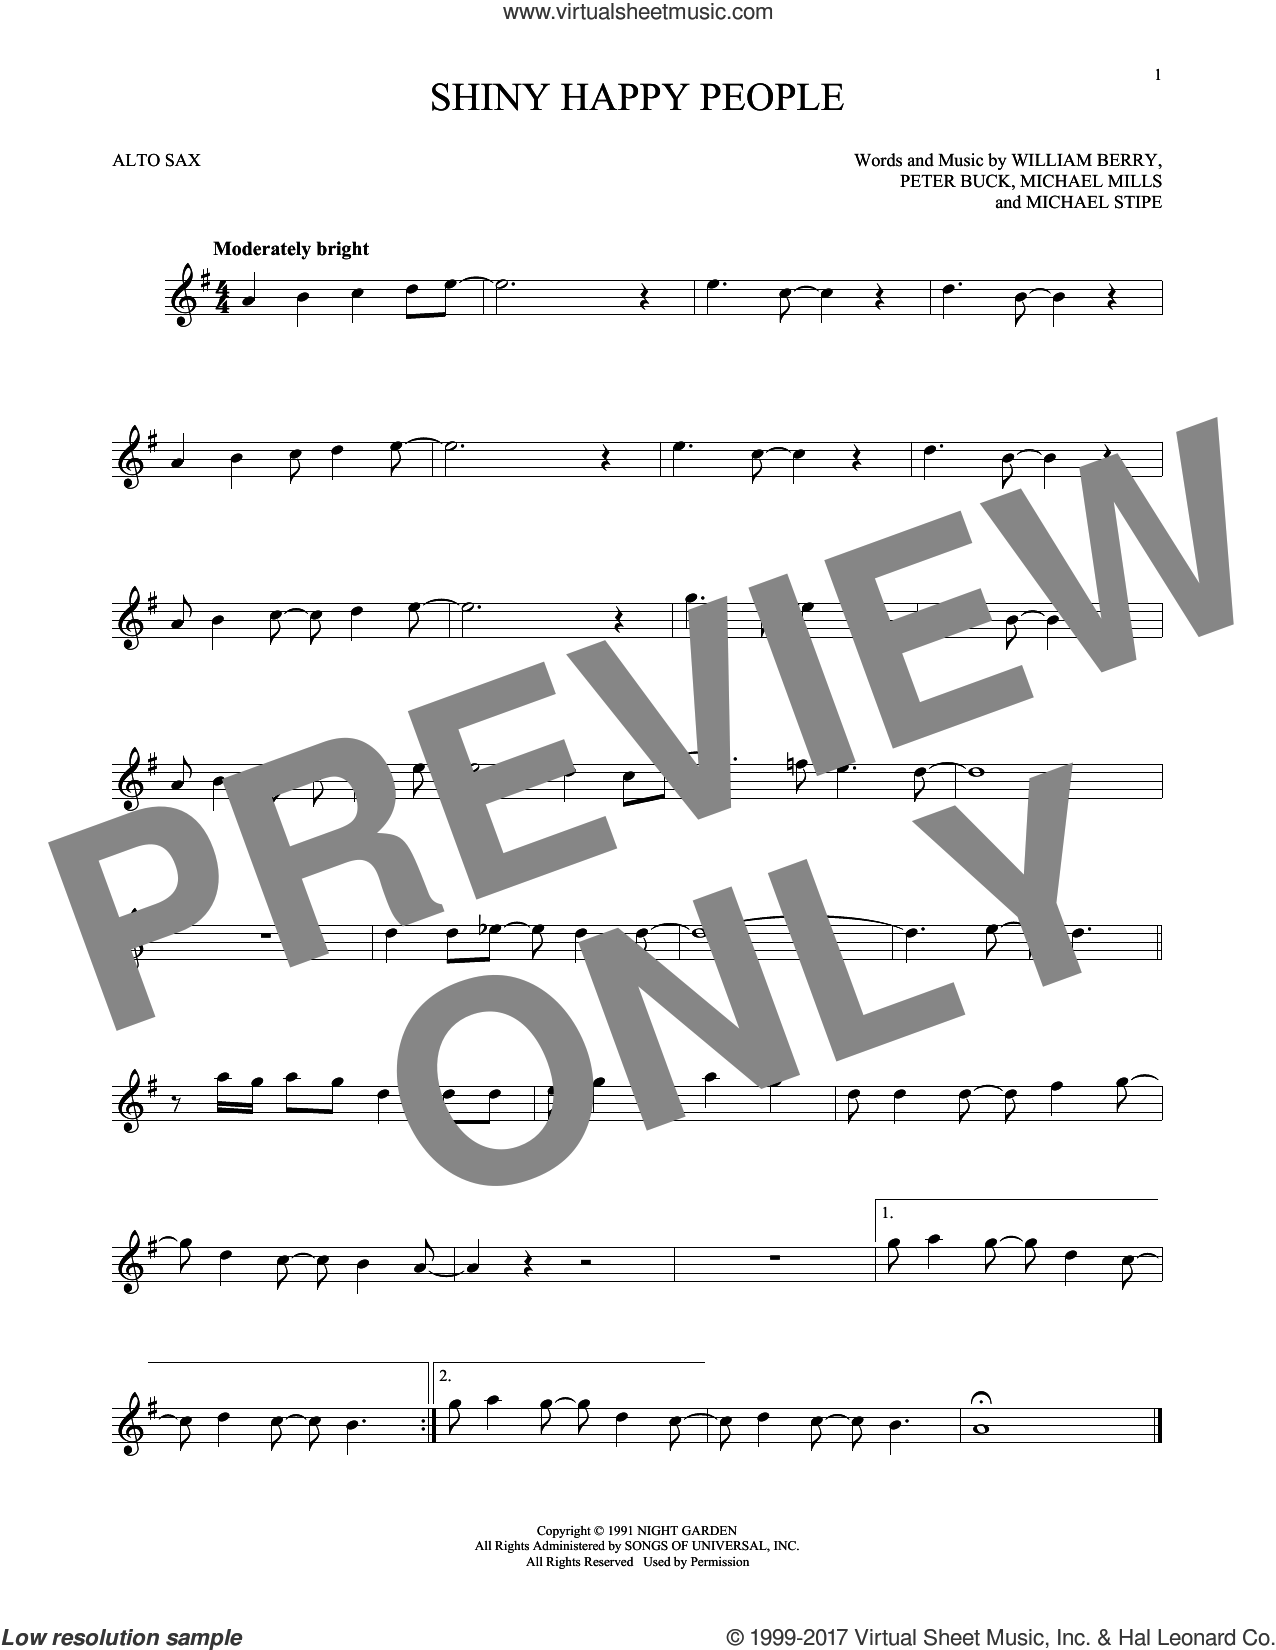 Shiny Happy People sheet music for alto saxophone solo by R.E.M., Michael Stipe, Mike Mills, Peter Buck and William Berry, intermediate skill level